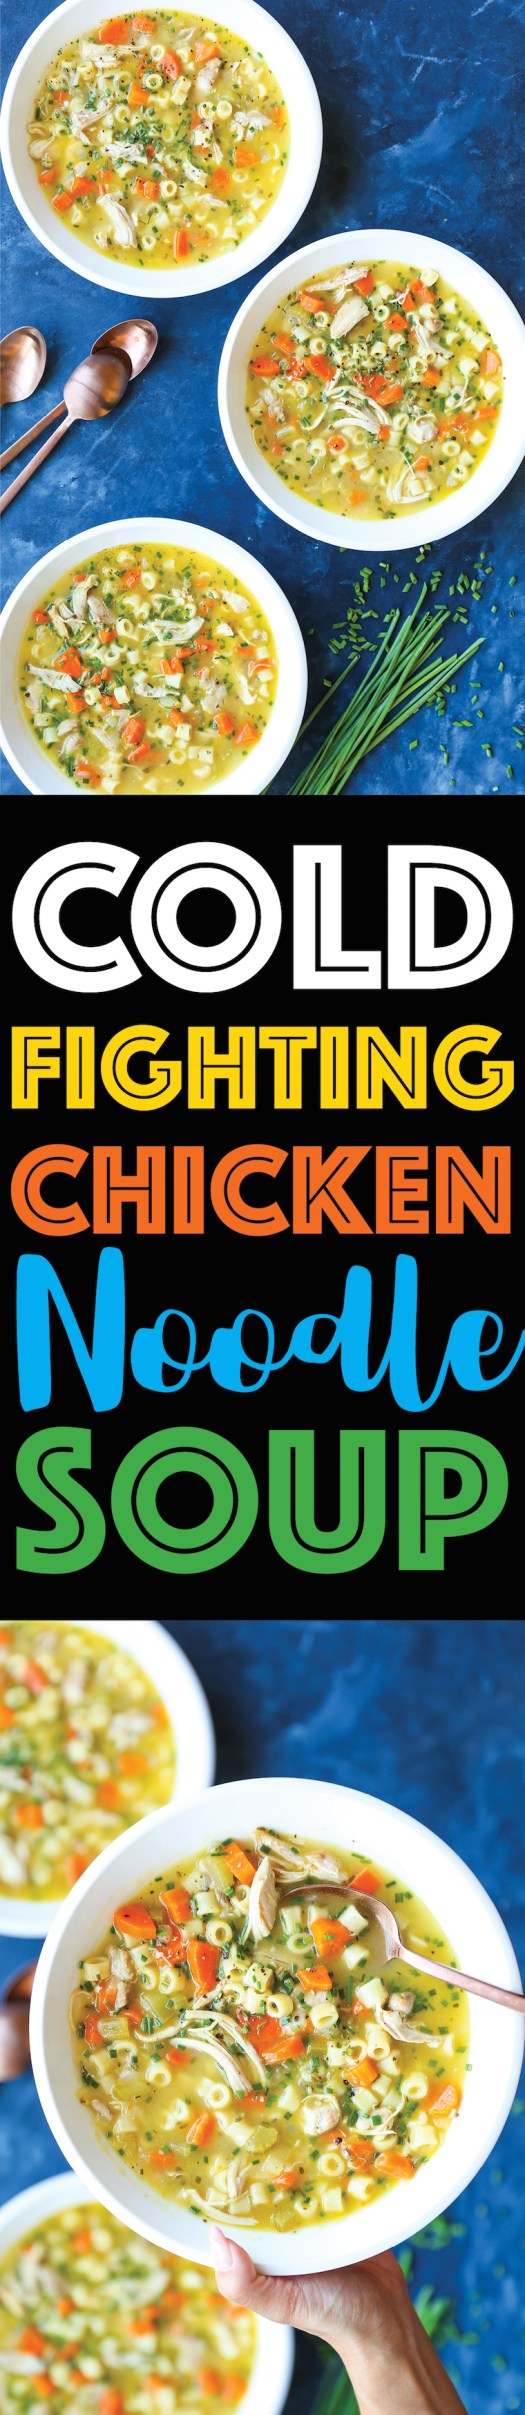 Cold Fighting Chicken Noodle Soup - The most soothing, comforting, cozy soup for the flu season! Quick/easy to make, you'll be feeling better in no time!